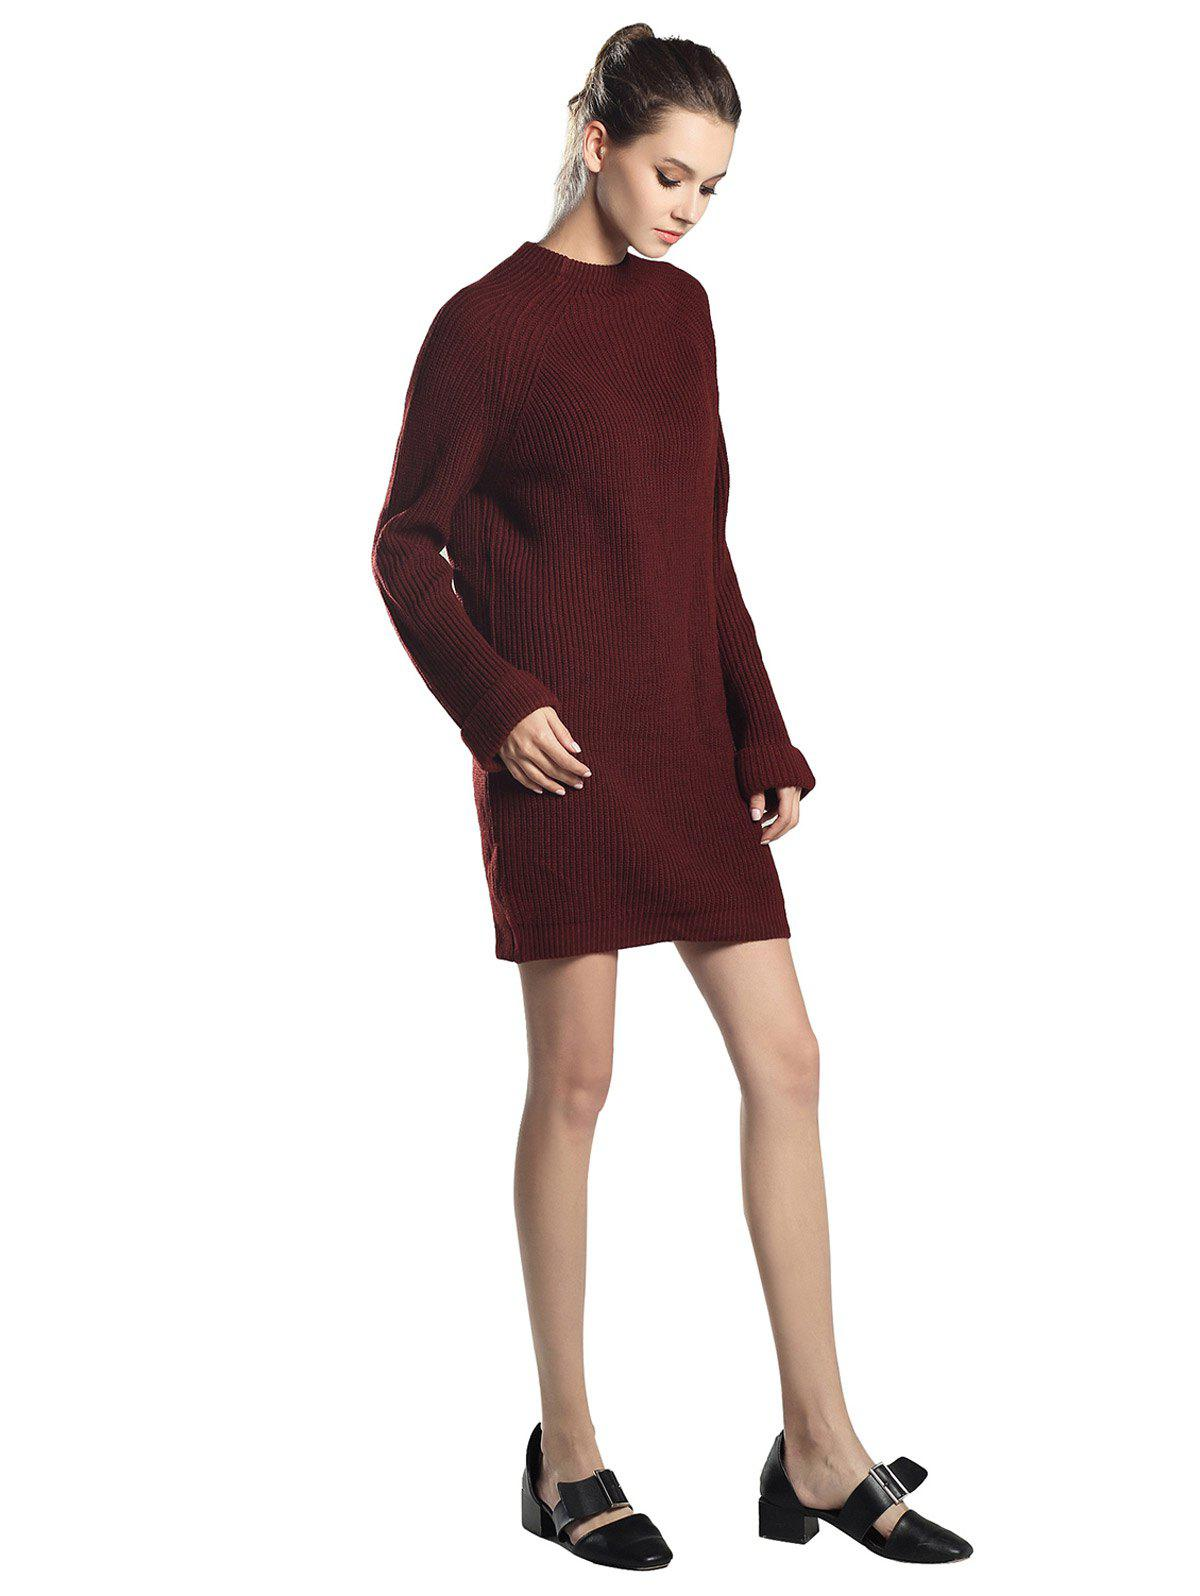 Buy High Neck Raglan sleeve knit sweater Mini dress